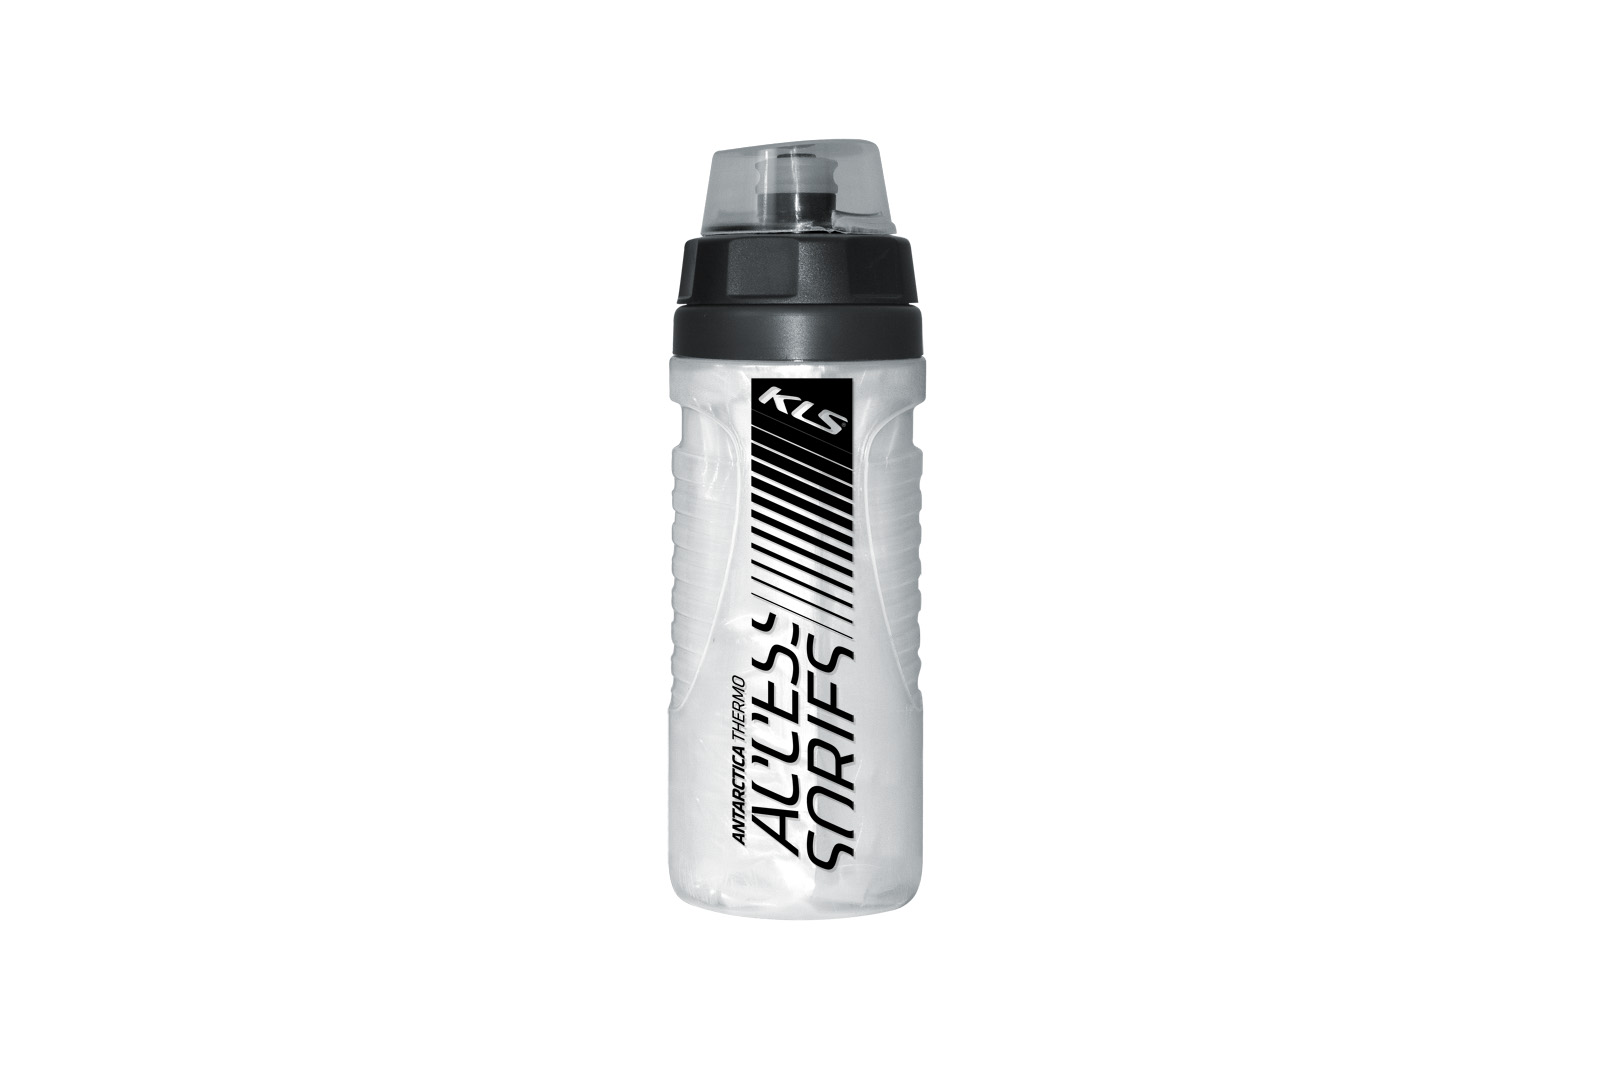 ANTARCTICA 0,5L Shiny White Thermo - ANTARCTICA 0,5L Shiny White Thermo